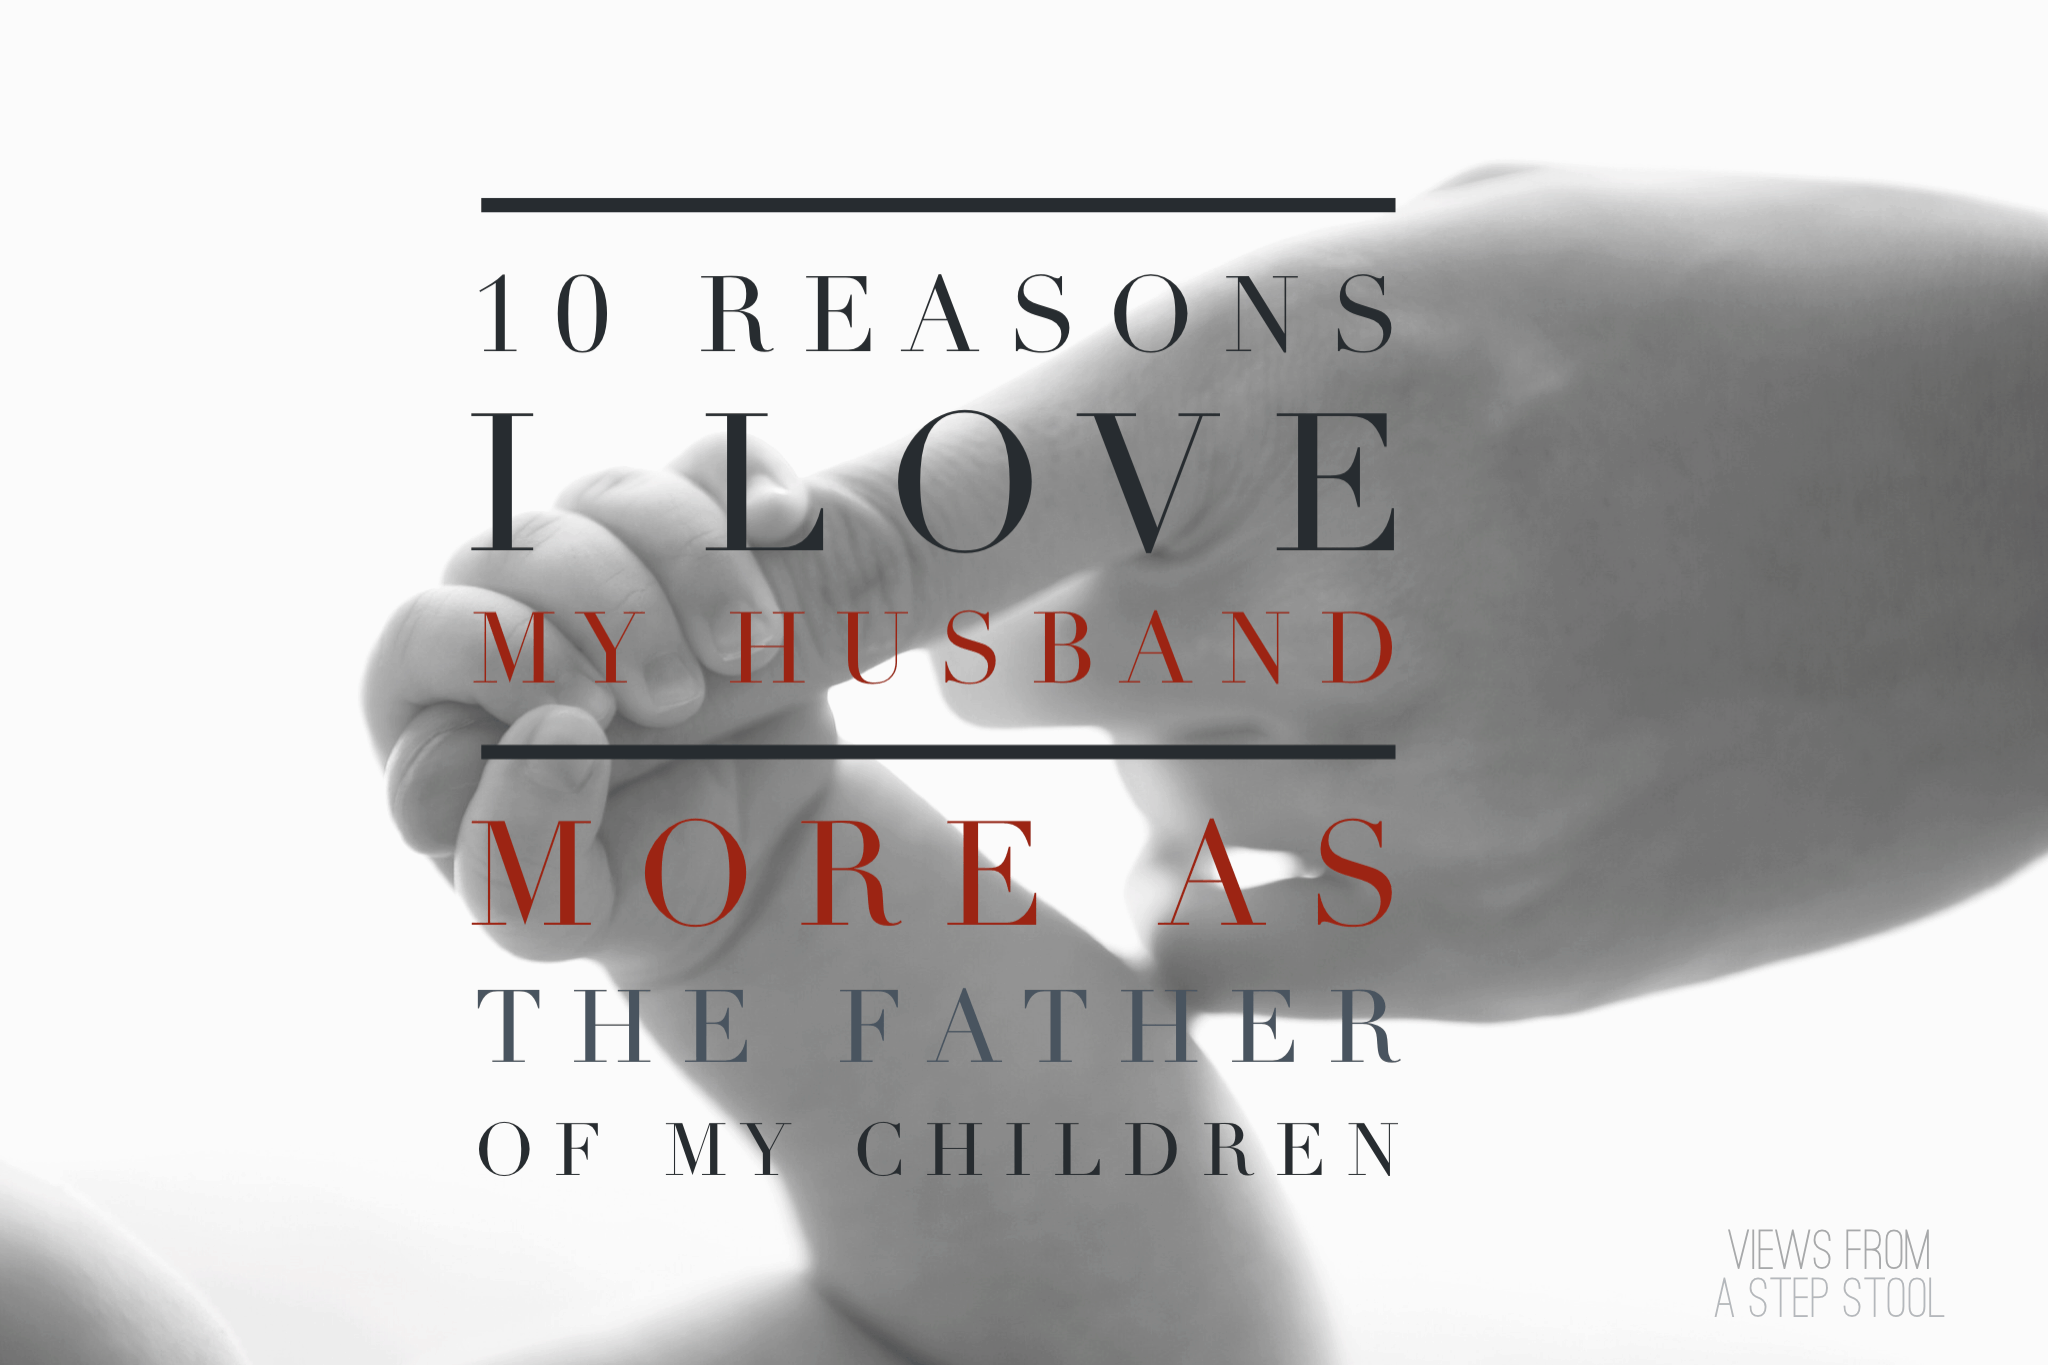 There are so many reasons yo love your spouse differently after having children with them, here are some of mine.